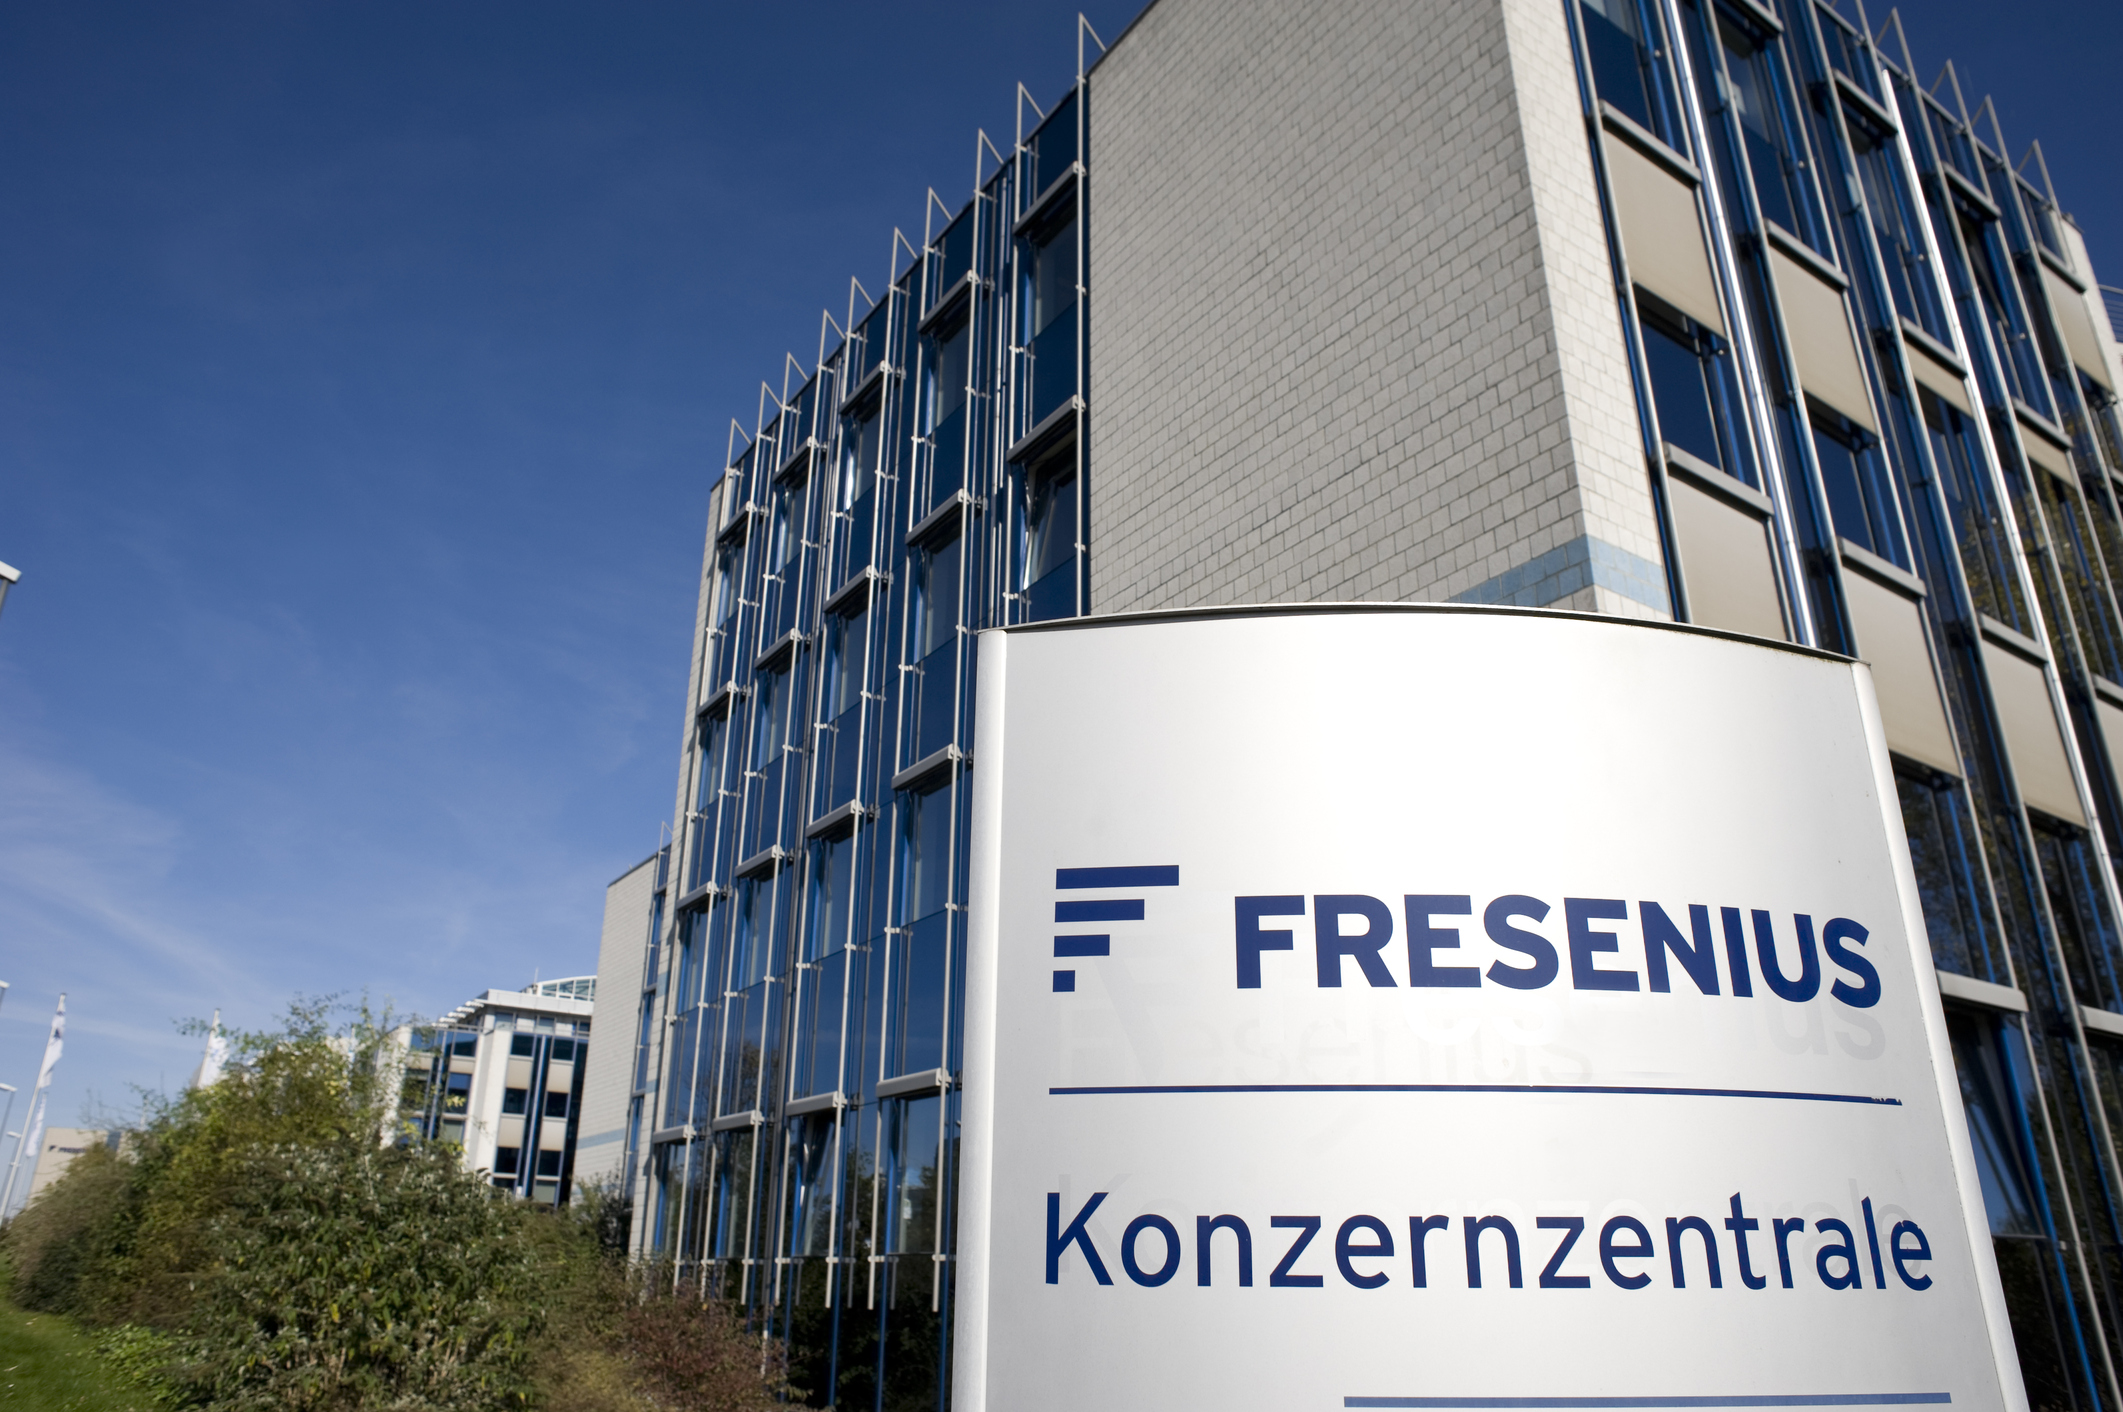 German medical company enters FCPA settlement talks with US authorities